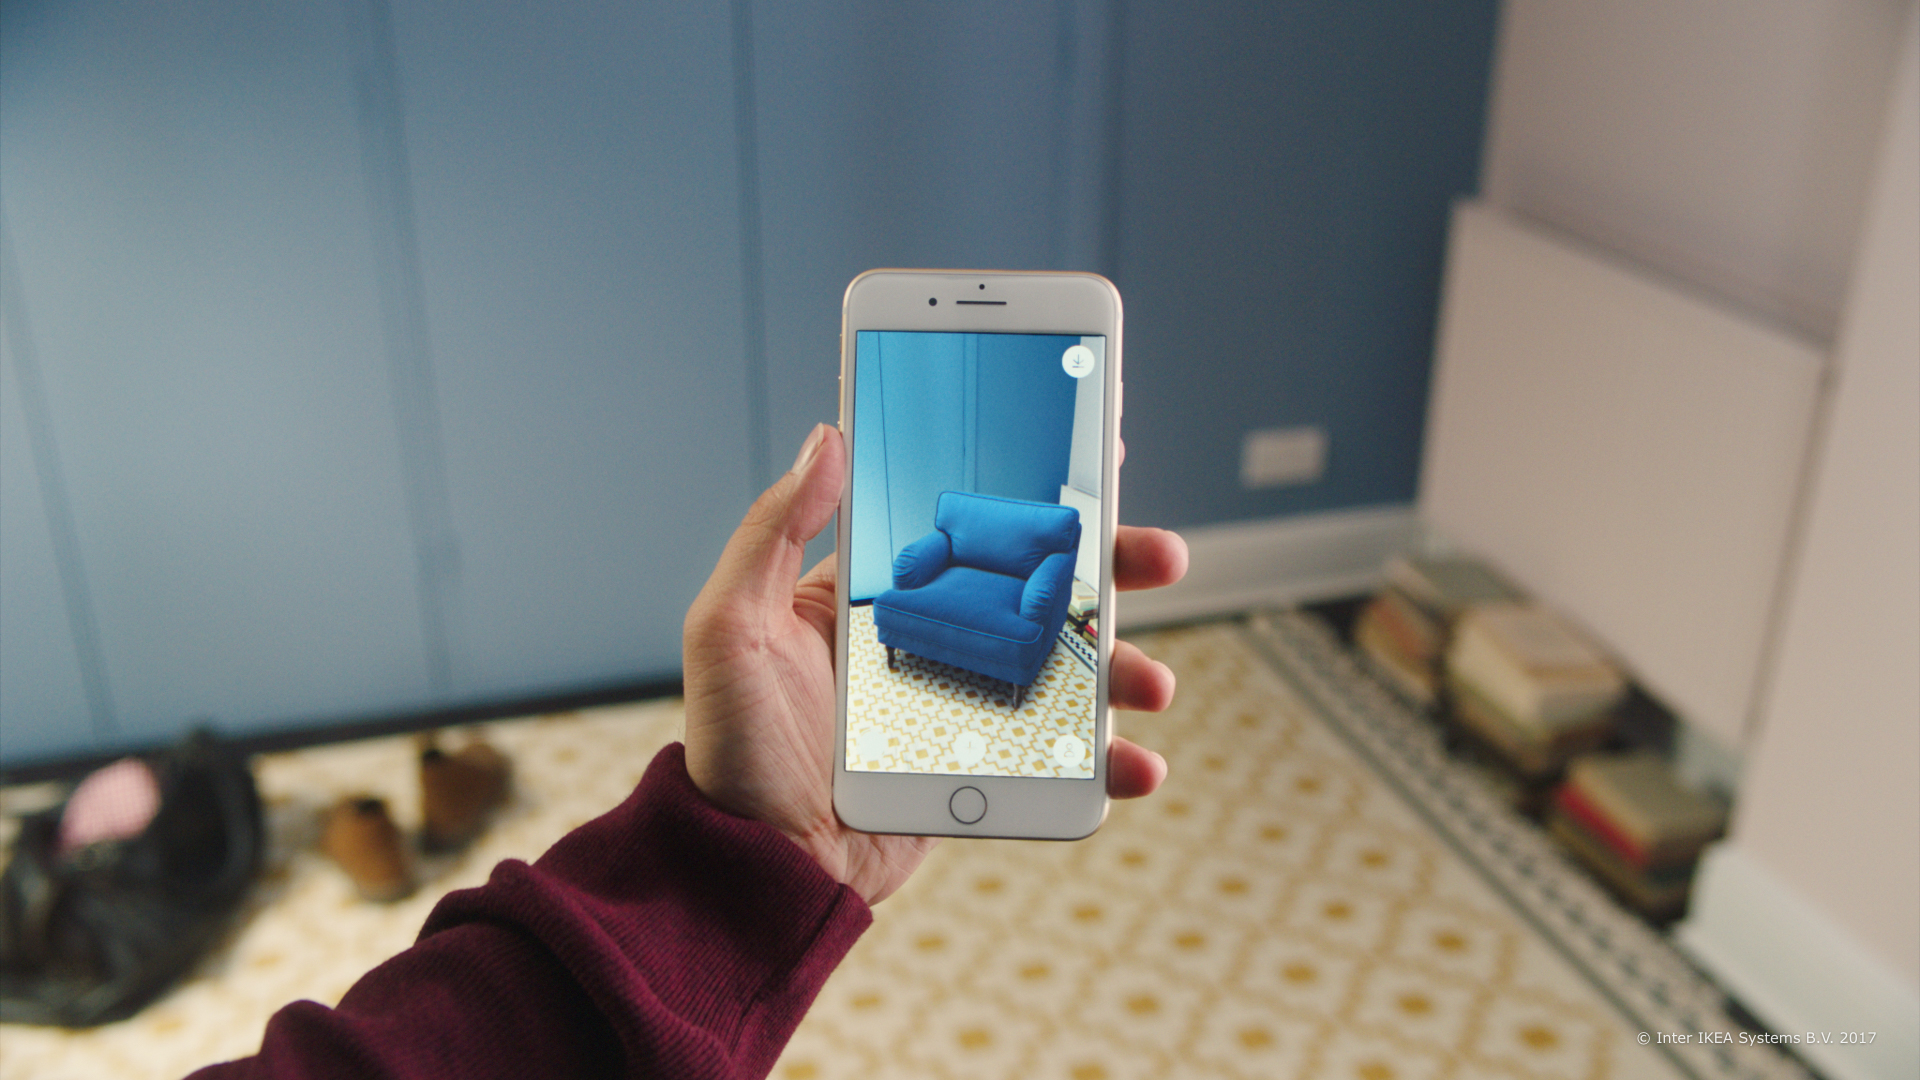 ikea place the retailer s first arkit app creates lifelike pictures of furniture in your home. Black Bedroom Furniture Sets. Home Design Ideas